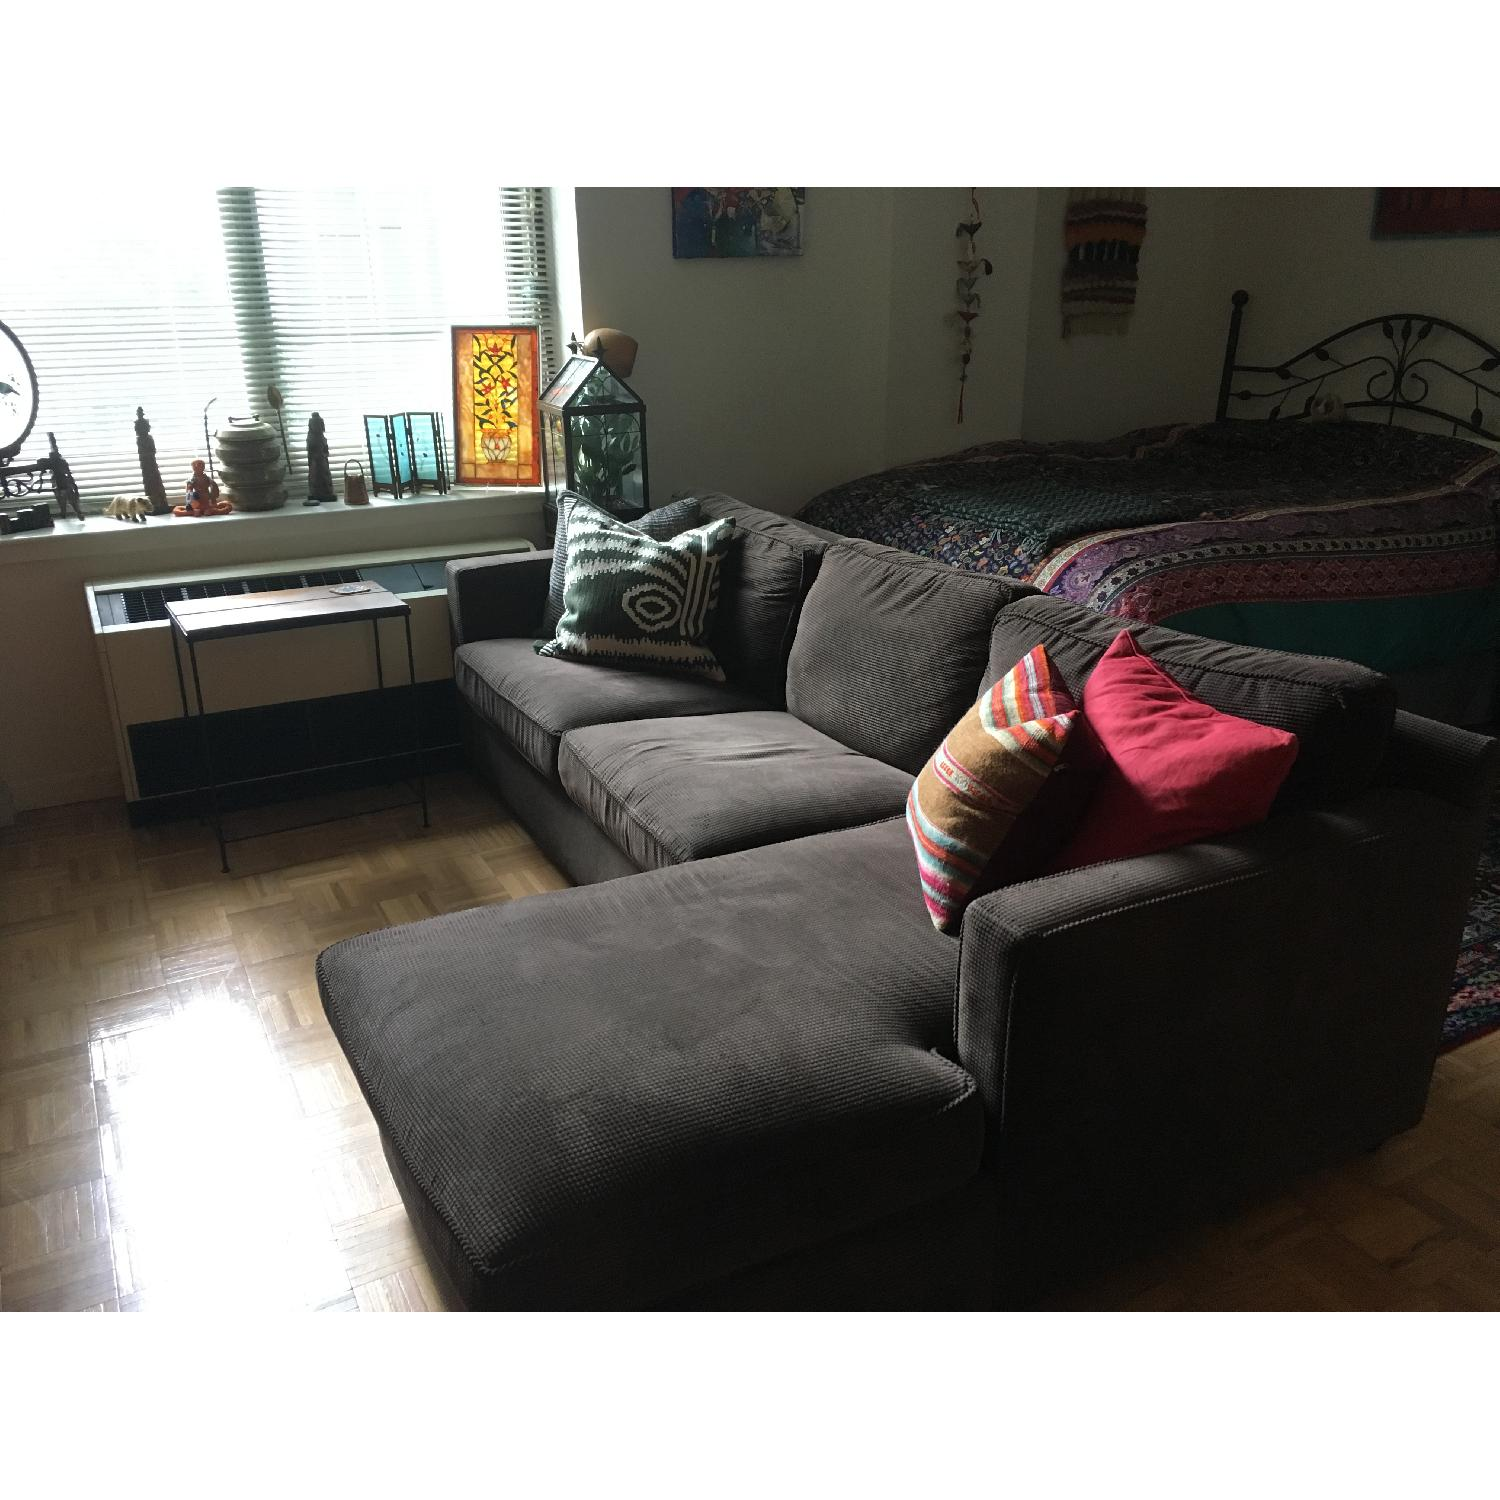 Fine Crate Barrel Chocolate Corduroy Chaise Sectional Sofa Gamerscity Chair Design For Home Gamerscityorg